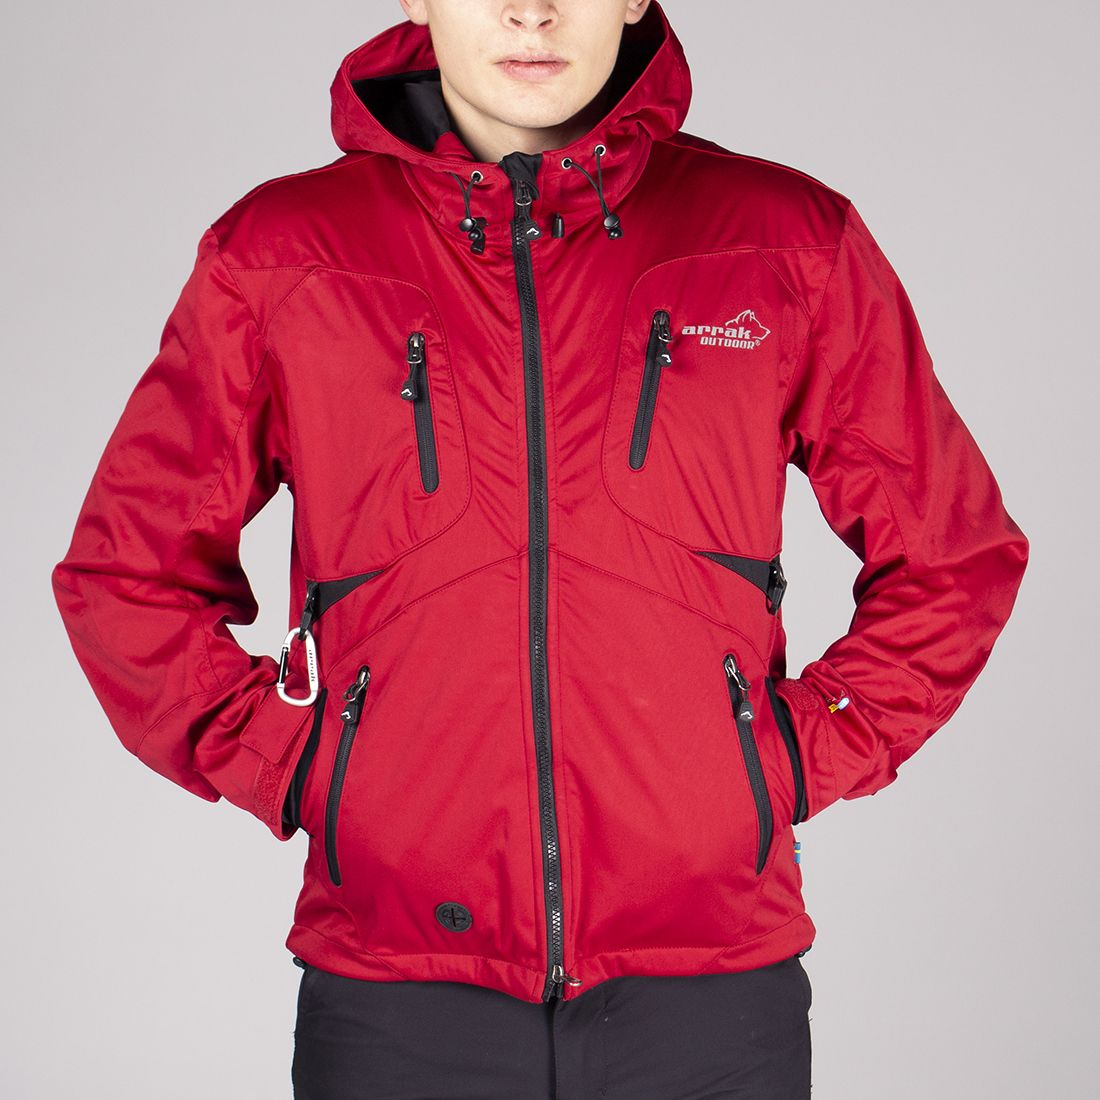 Arrak Akka Softshelljacket  UNISEX red S